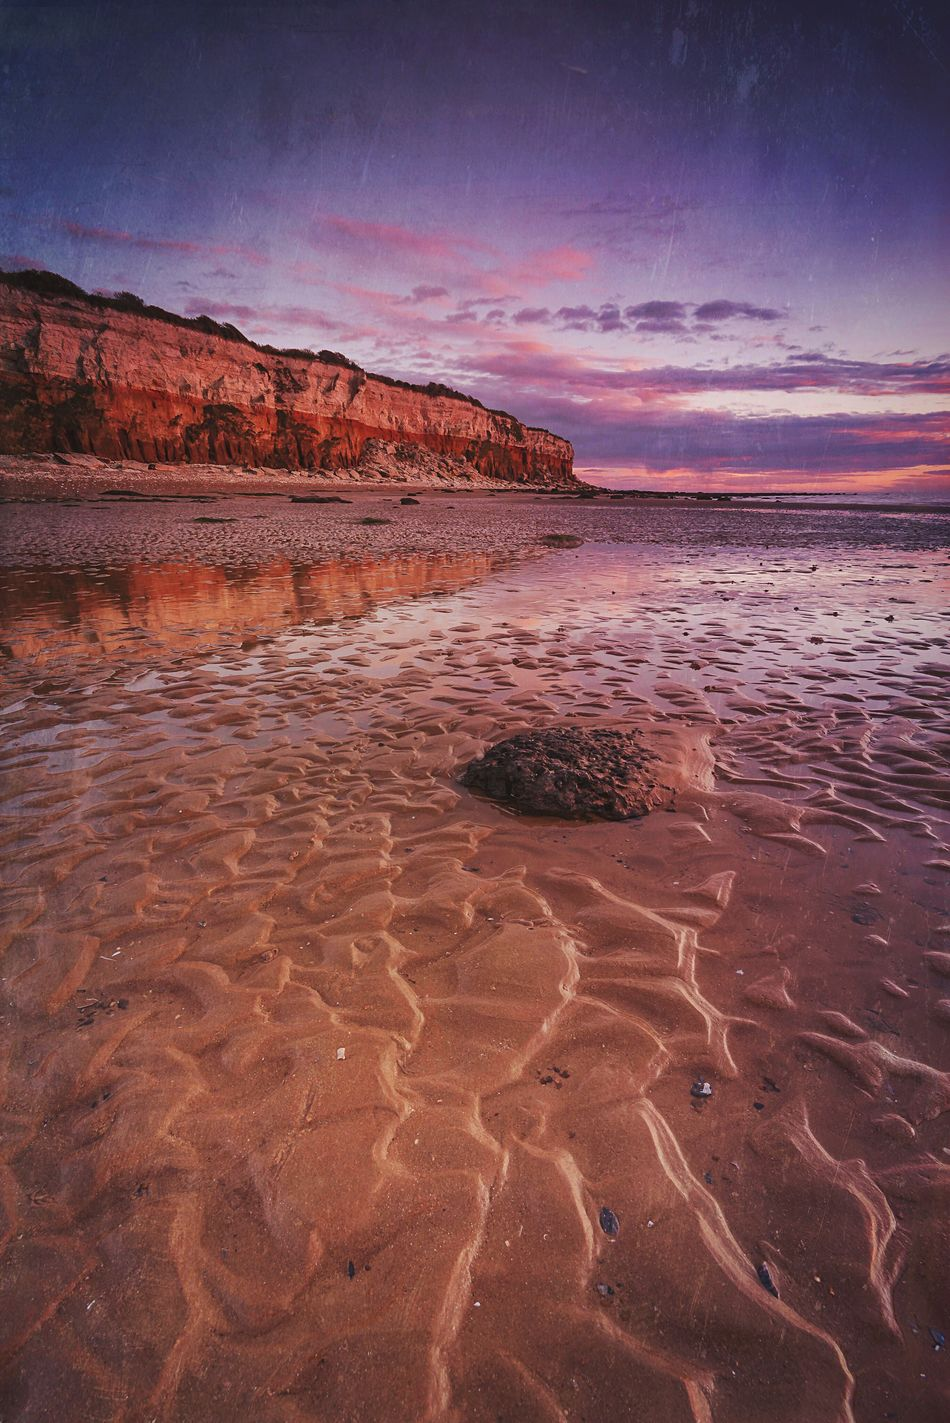 Ripplicious Scenics Beach Beach Sunset Hunstanton Tranquility Landscape Seaside Sea And Sky Travel Destinations EyeEm Masterclass By The Sea Norfolk Uk The Secret Spaces Landscape_Collection Cliff Cloudporn Dusk Colours Clouds And Sky Sunset_collection Britain Outdoors Sand Patterns Ripples Beauty In Nature Nature